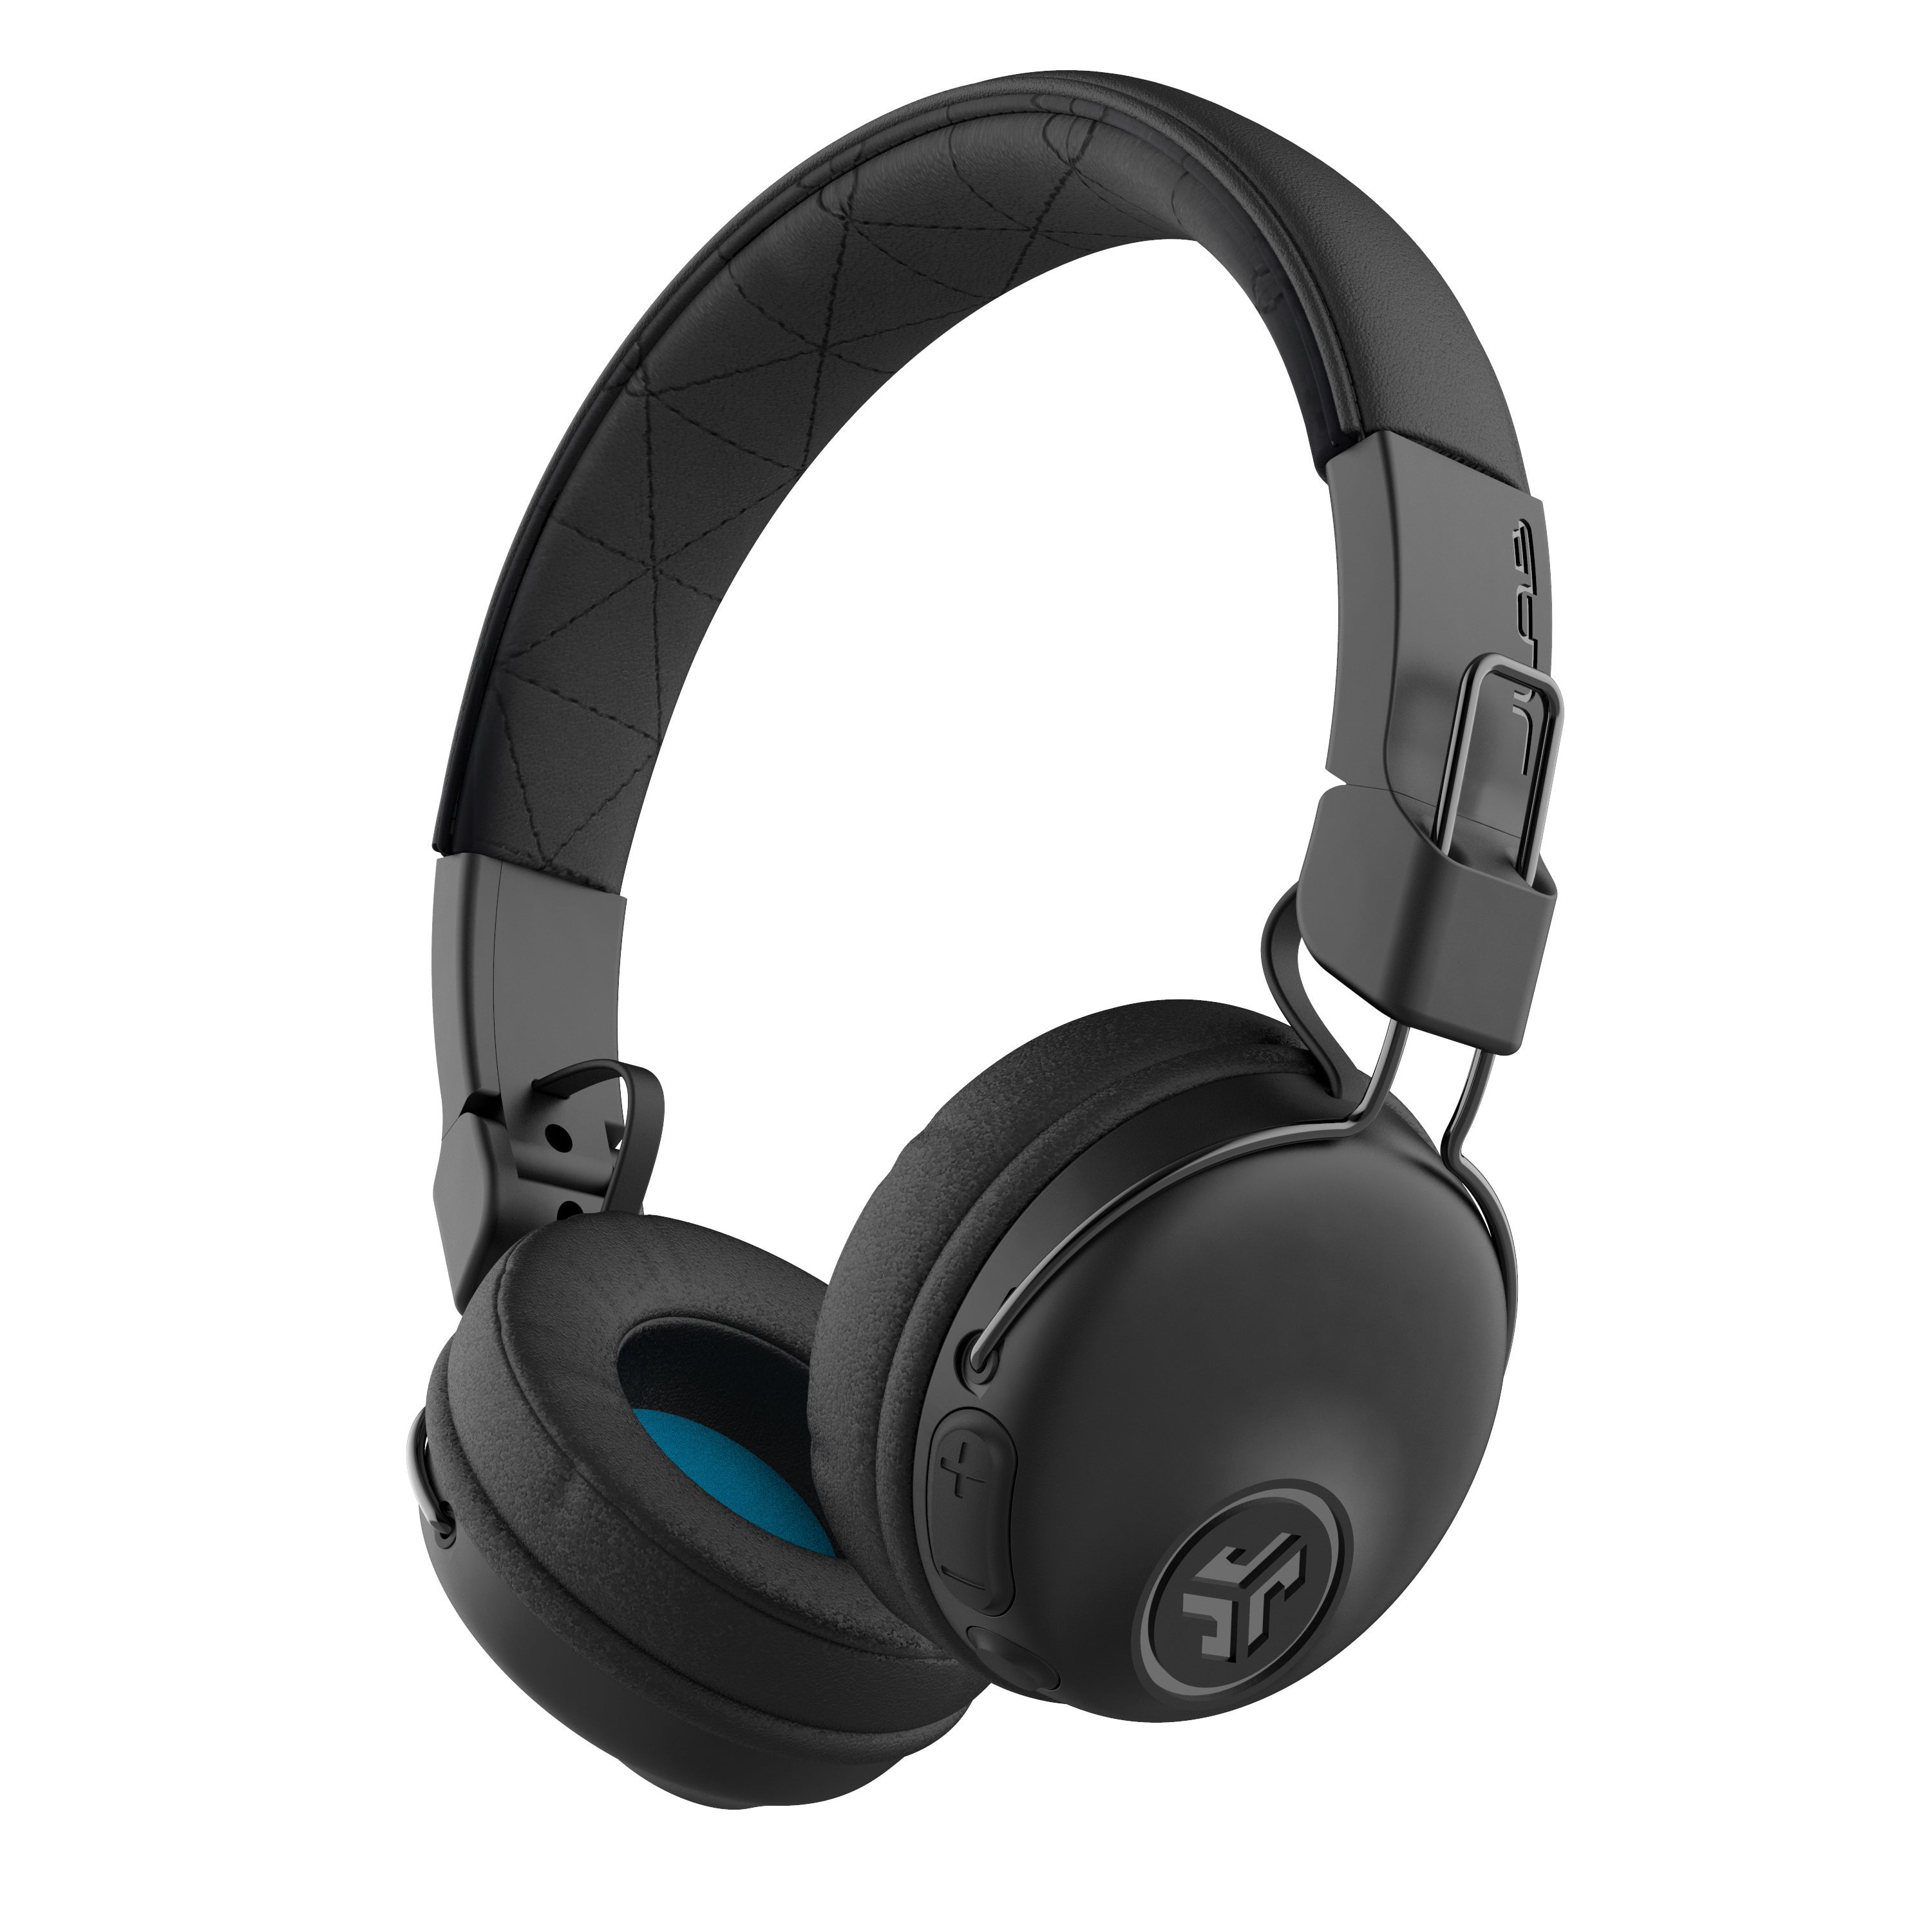 Studio Bluetooth Wireless On-Ear Headphones Casque supra-auriculaire en noir